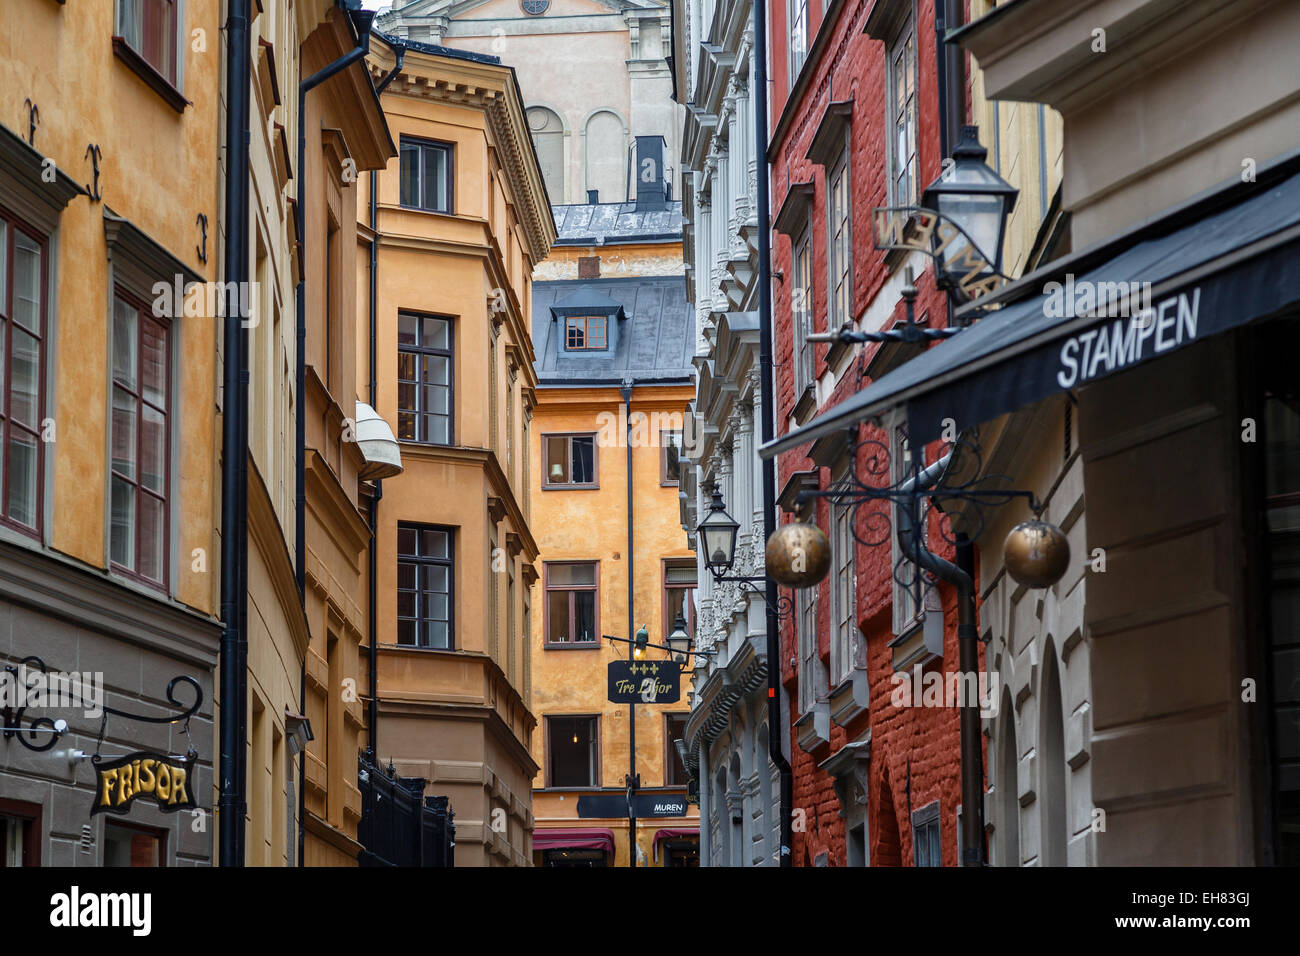 Buildings in Gamla Stan, Stockholm, Sweden, Scandinavia, Europe - Stock Image